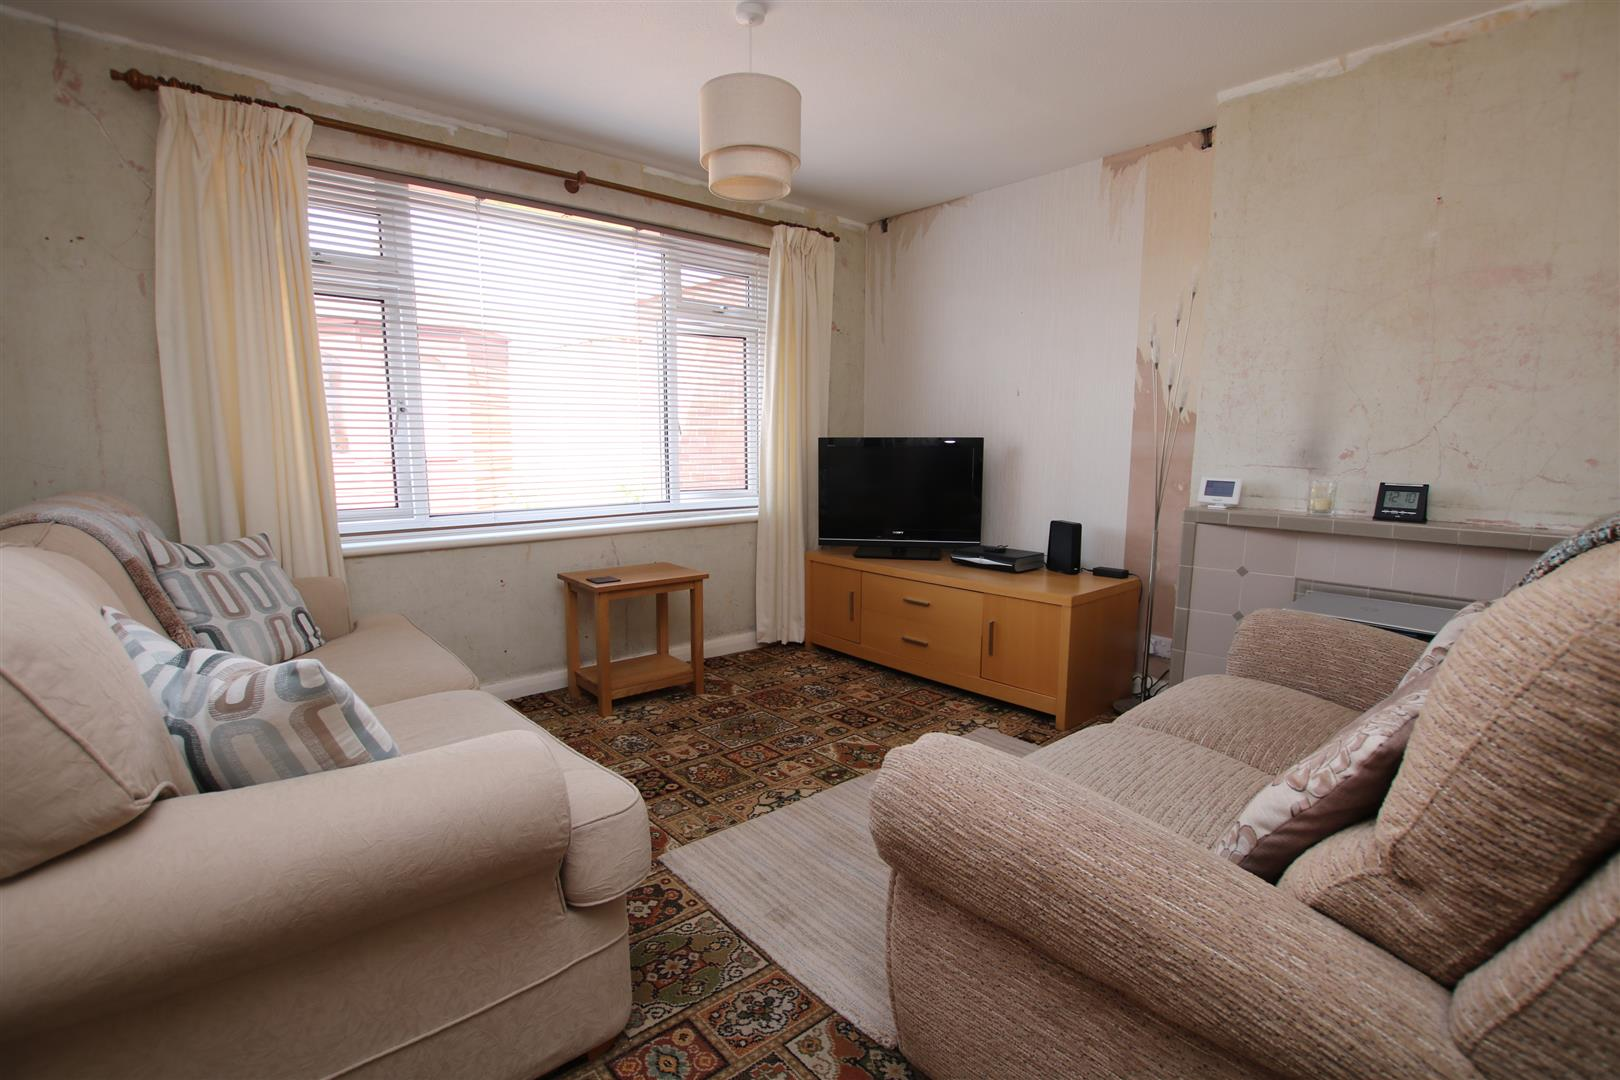 Salmon Pool Lane St Leonards Exeter 3 Bedroom Semi Detached Average Cost Of Rewiring A Three Bed House Spacious Located In This Popular Residential Road The Property Is Situated Highly Convenient Location